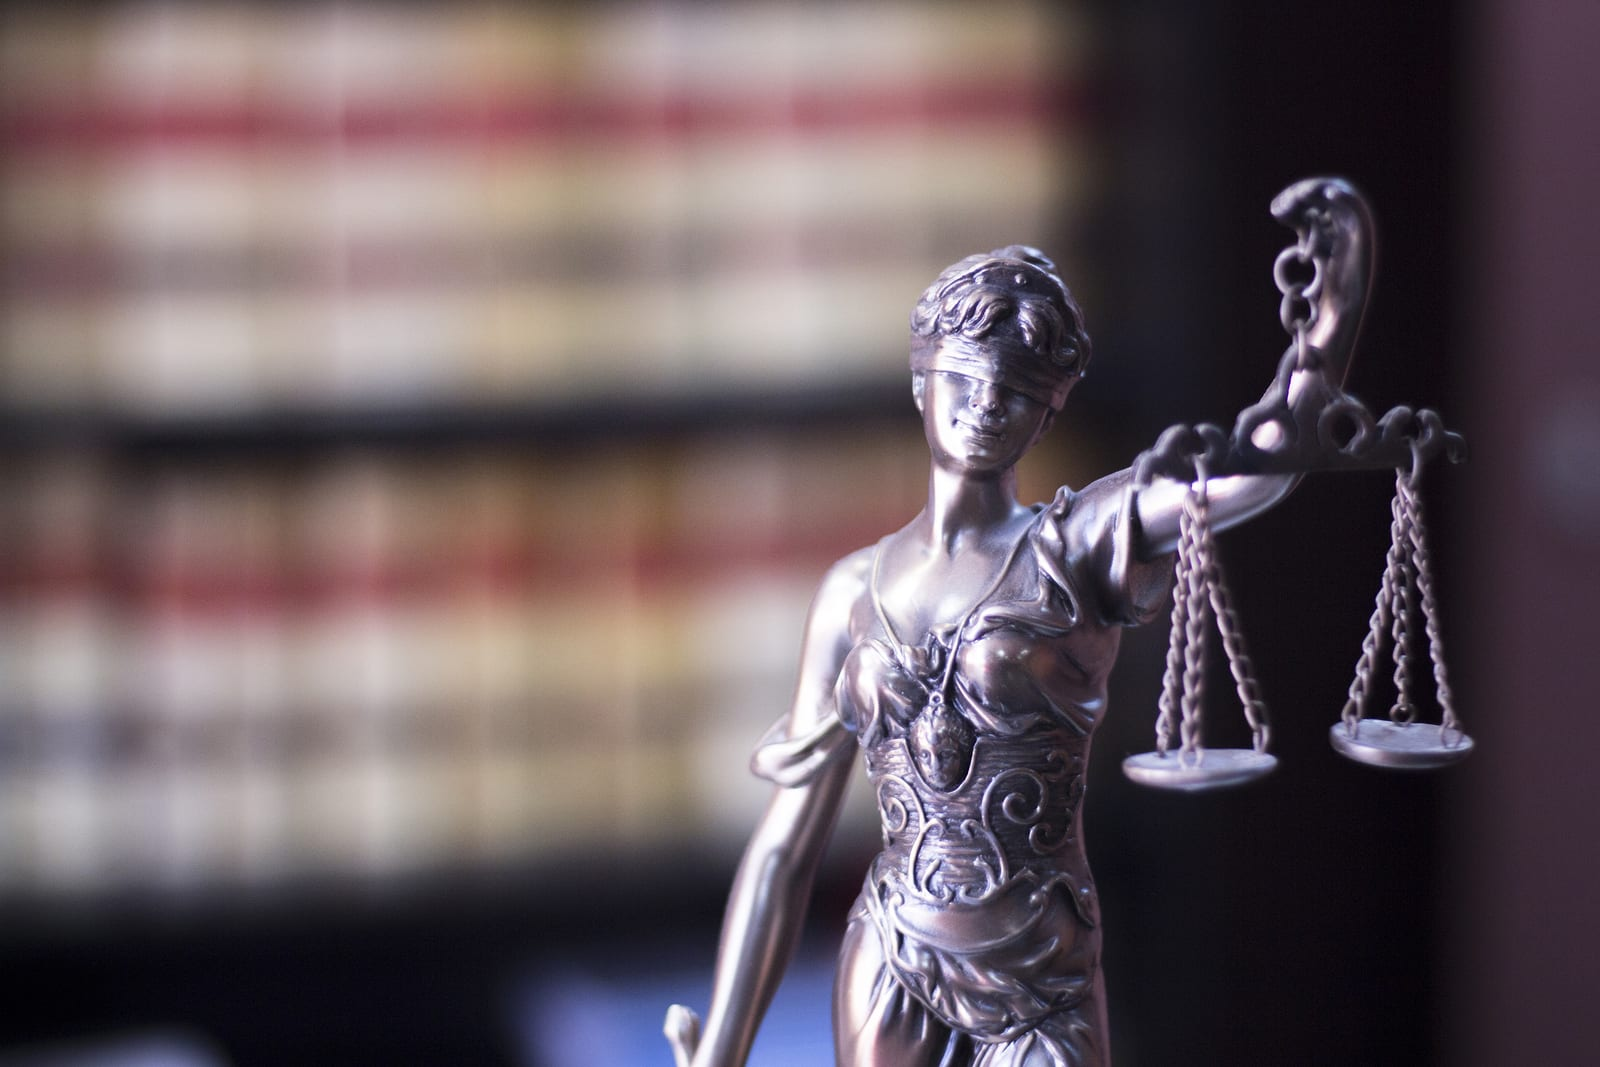 California News: Former IRS-CI Special Agent, Alena Aleykina Sentenced To Over Four Years In Prison For Filing False Tax Returns, Theft Of Government Money, And Obstruction Of Justice